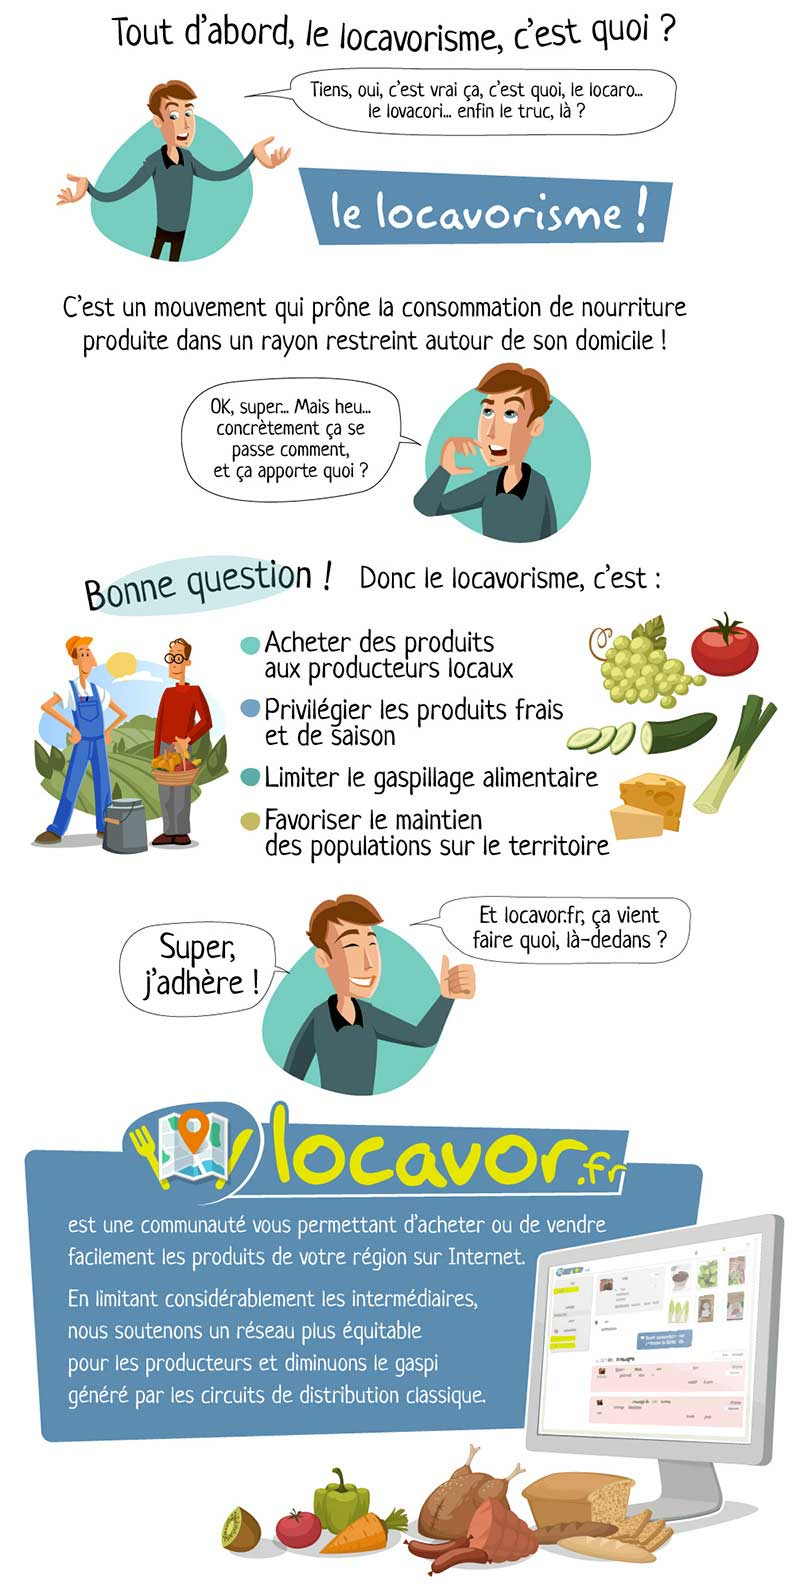 https://locavor.fr/data/divers/illustration/locavor.fr-etre-locavore.jpg